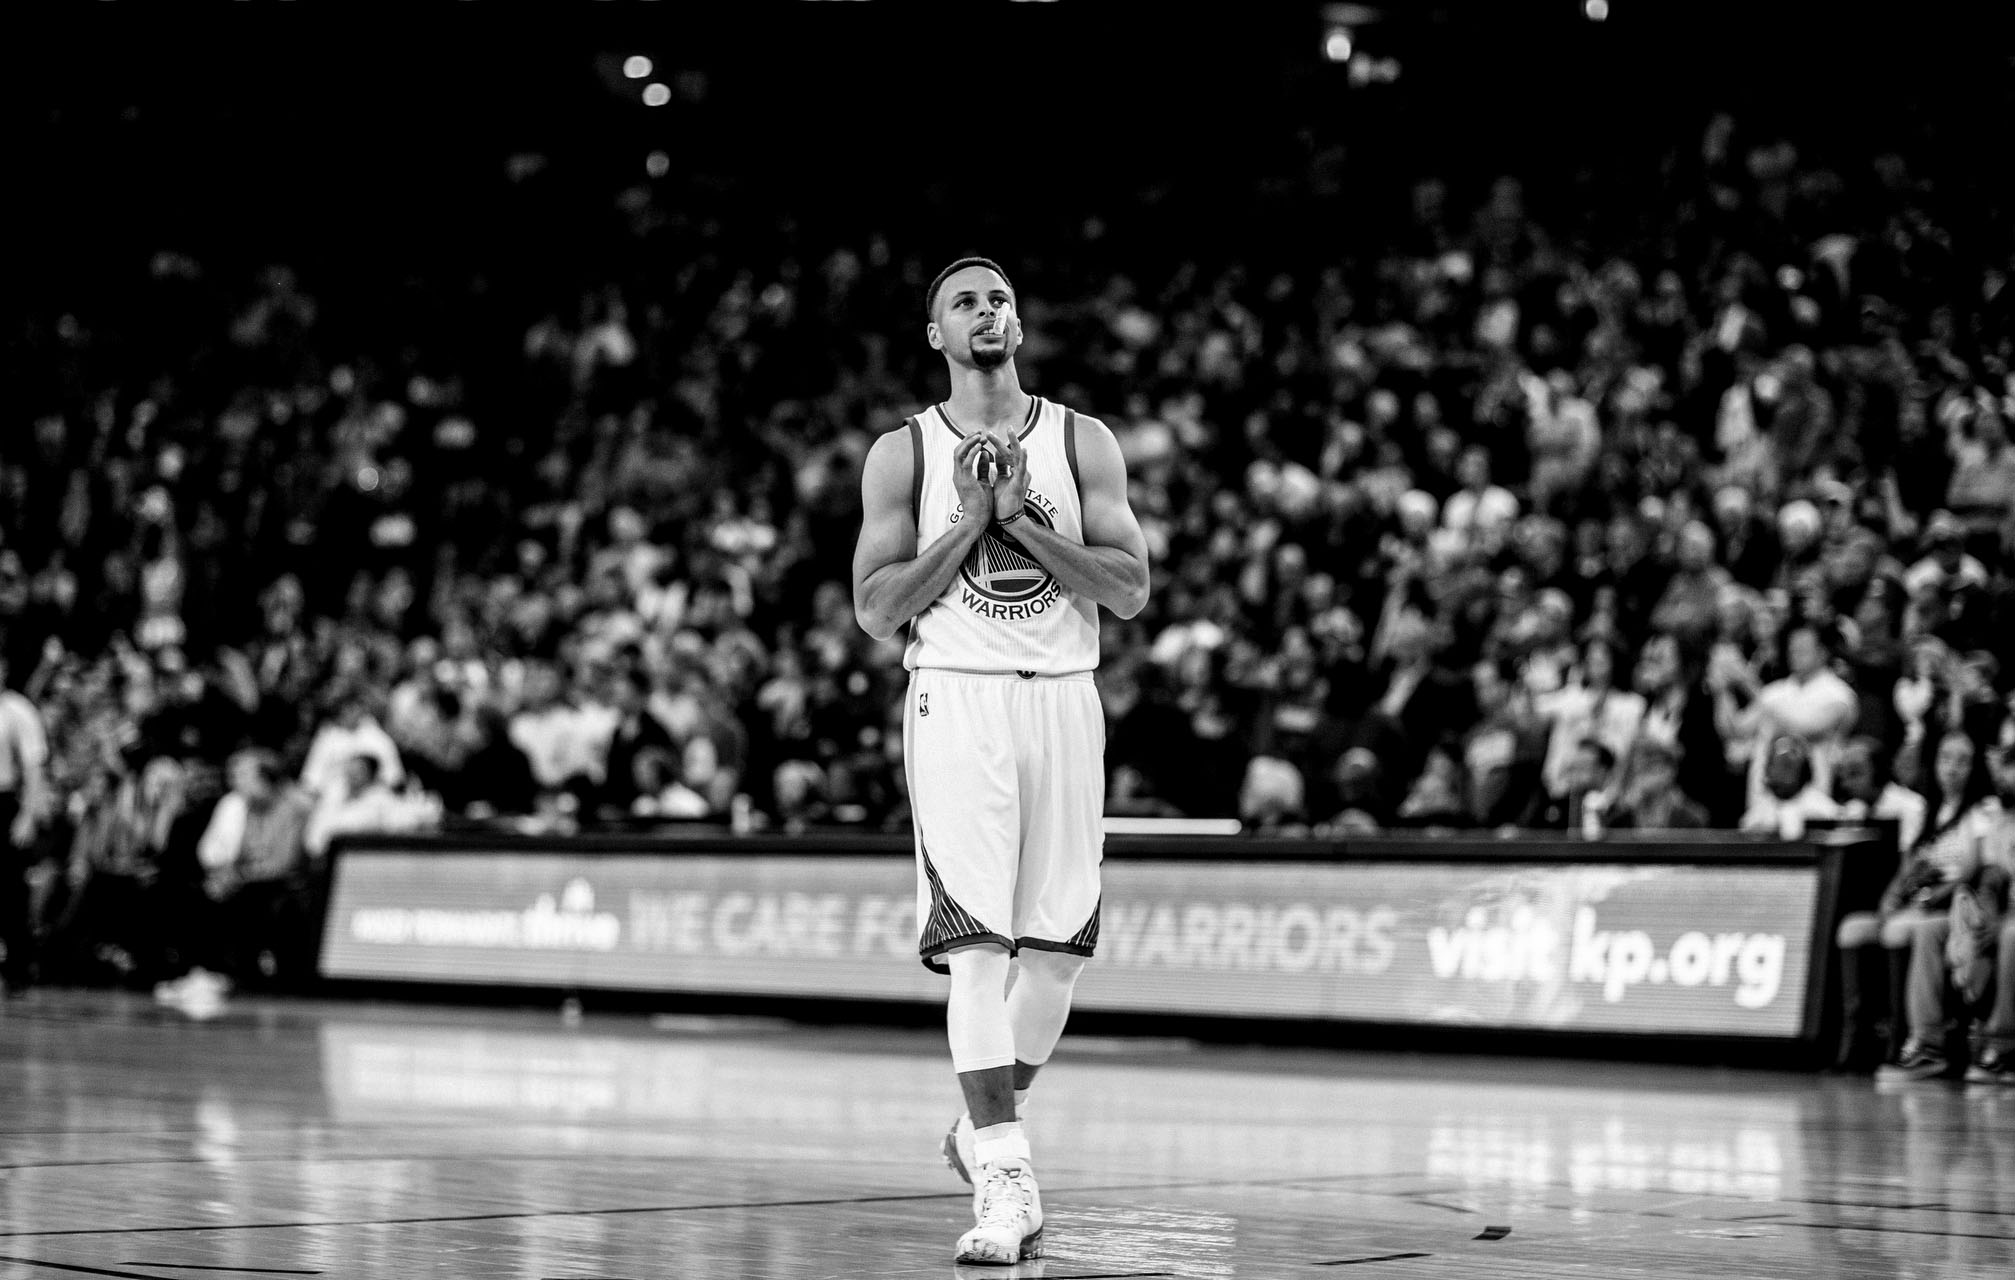 Curry_For_ESPNtheMag_031416_Laham_7062